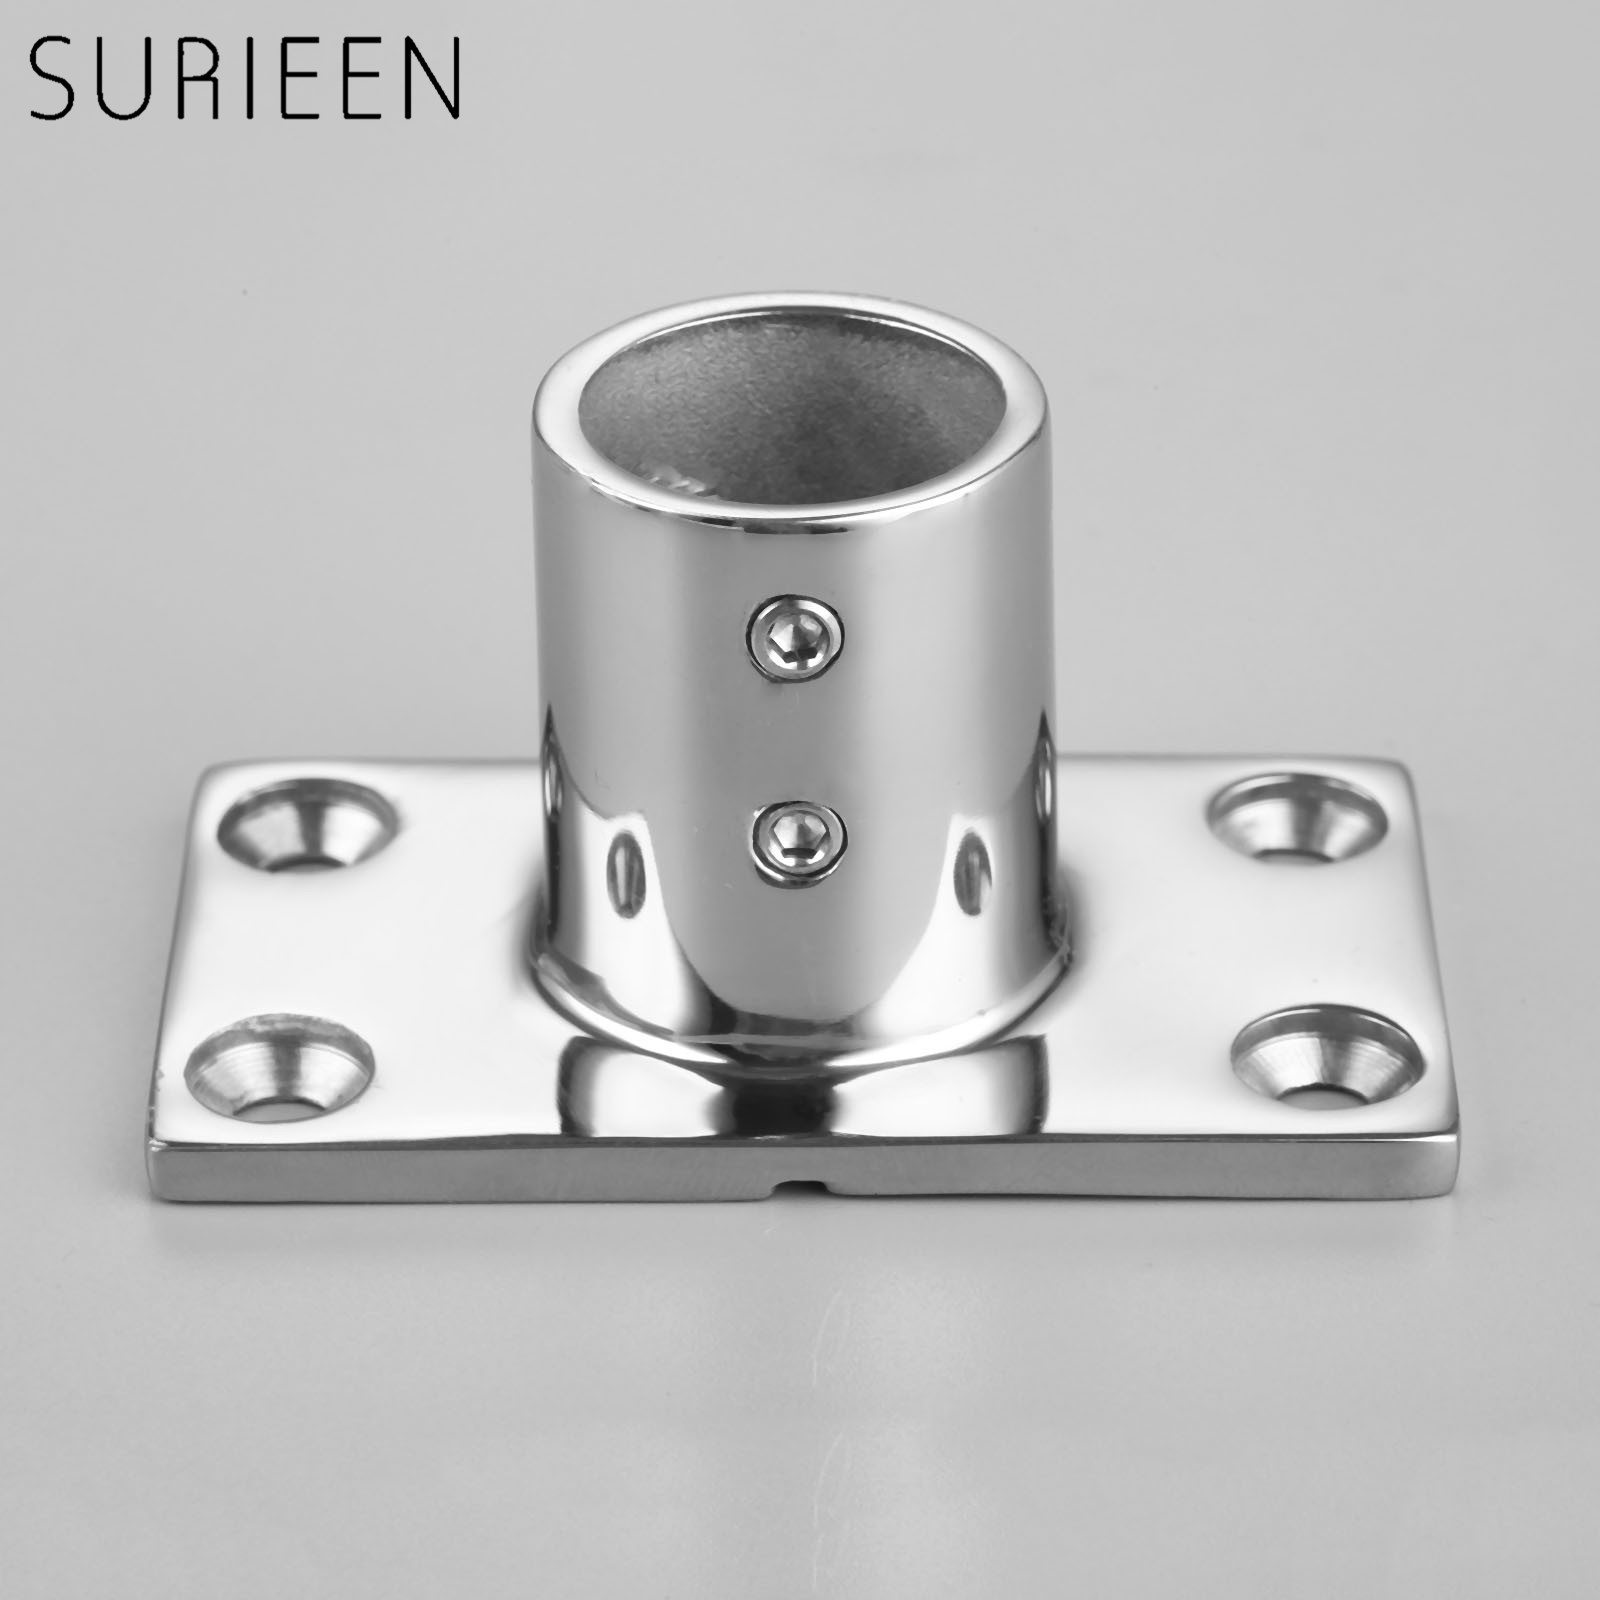 Citall 1pc Silver Zinc Alloy Marine Hand Rail Fitting 90 Degree 1 Round Stanchion Base For Ship Boat Vessel Yacht Professional Design Boat Parts & Accessories